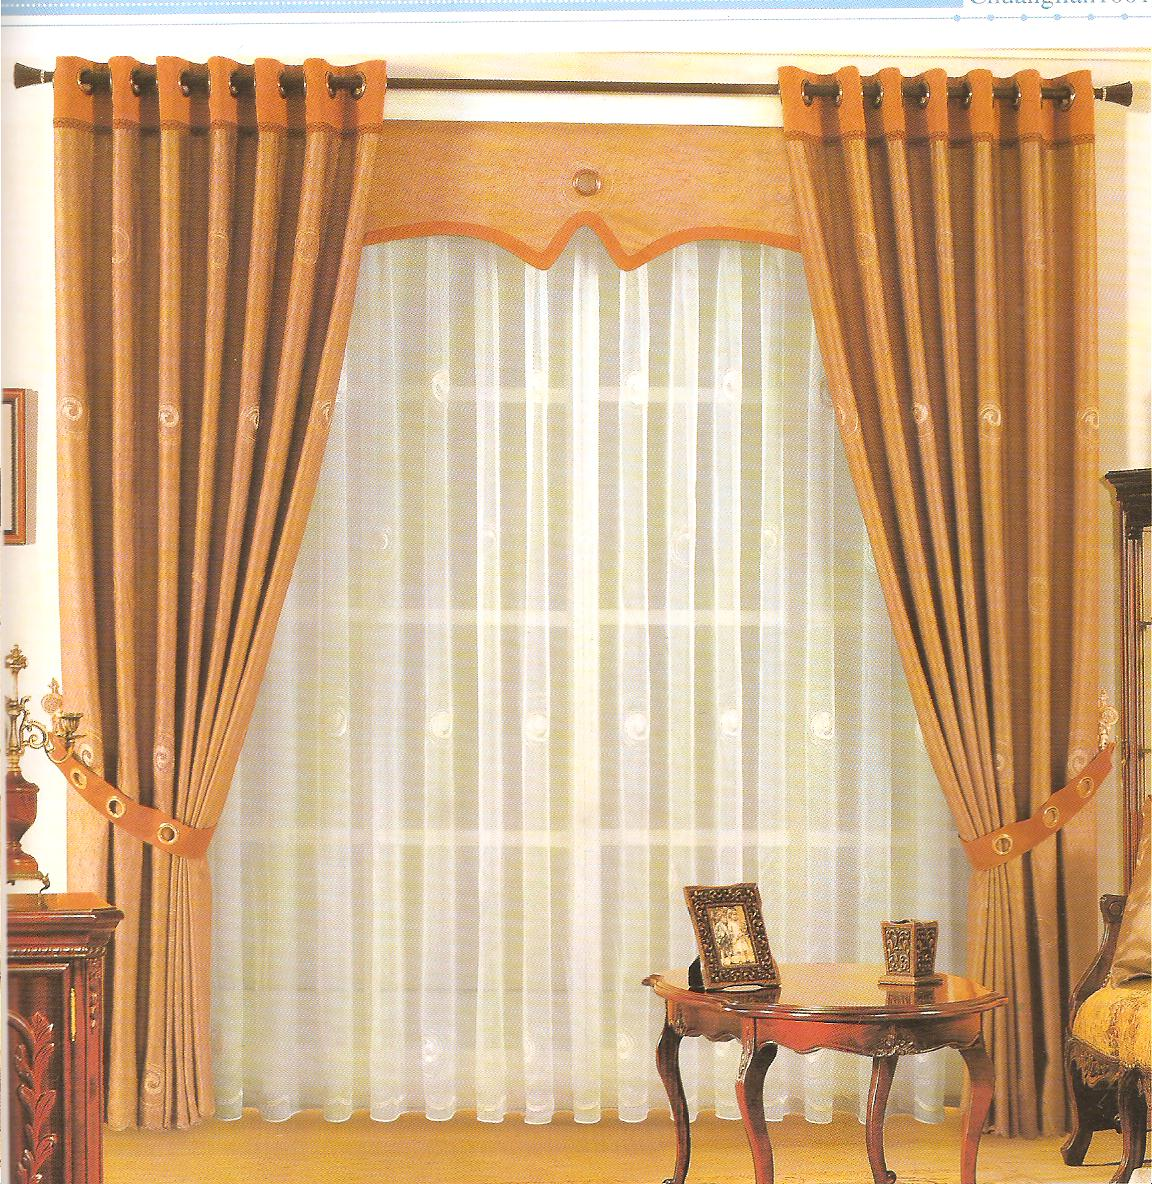 Sliding Glass Door Blinds with Curtains